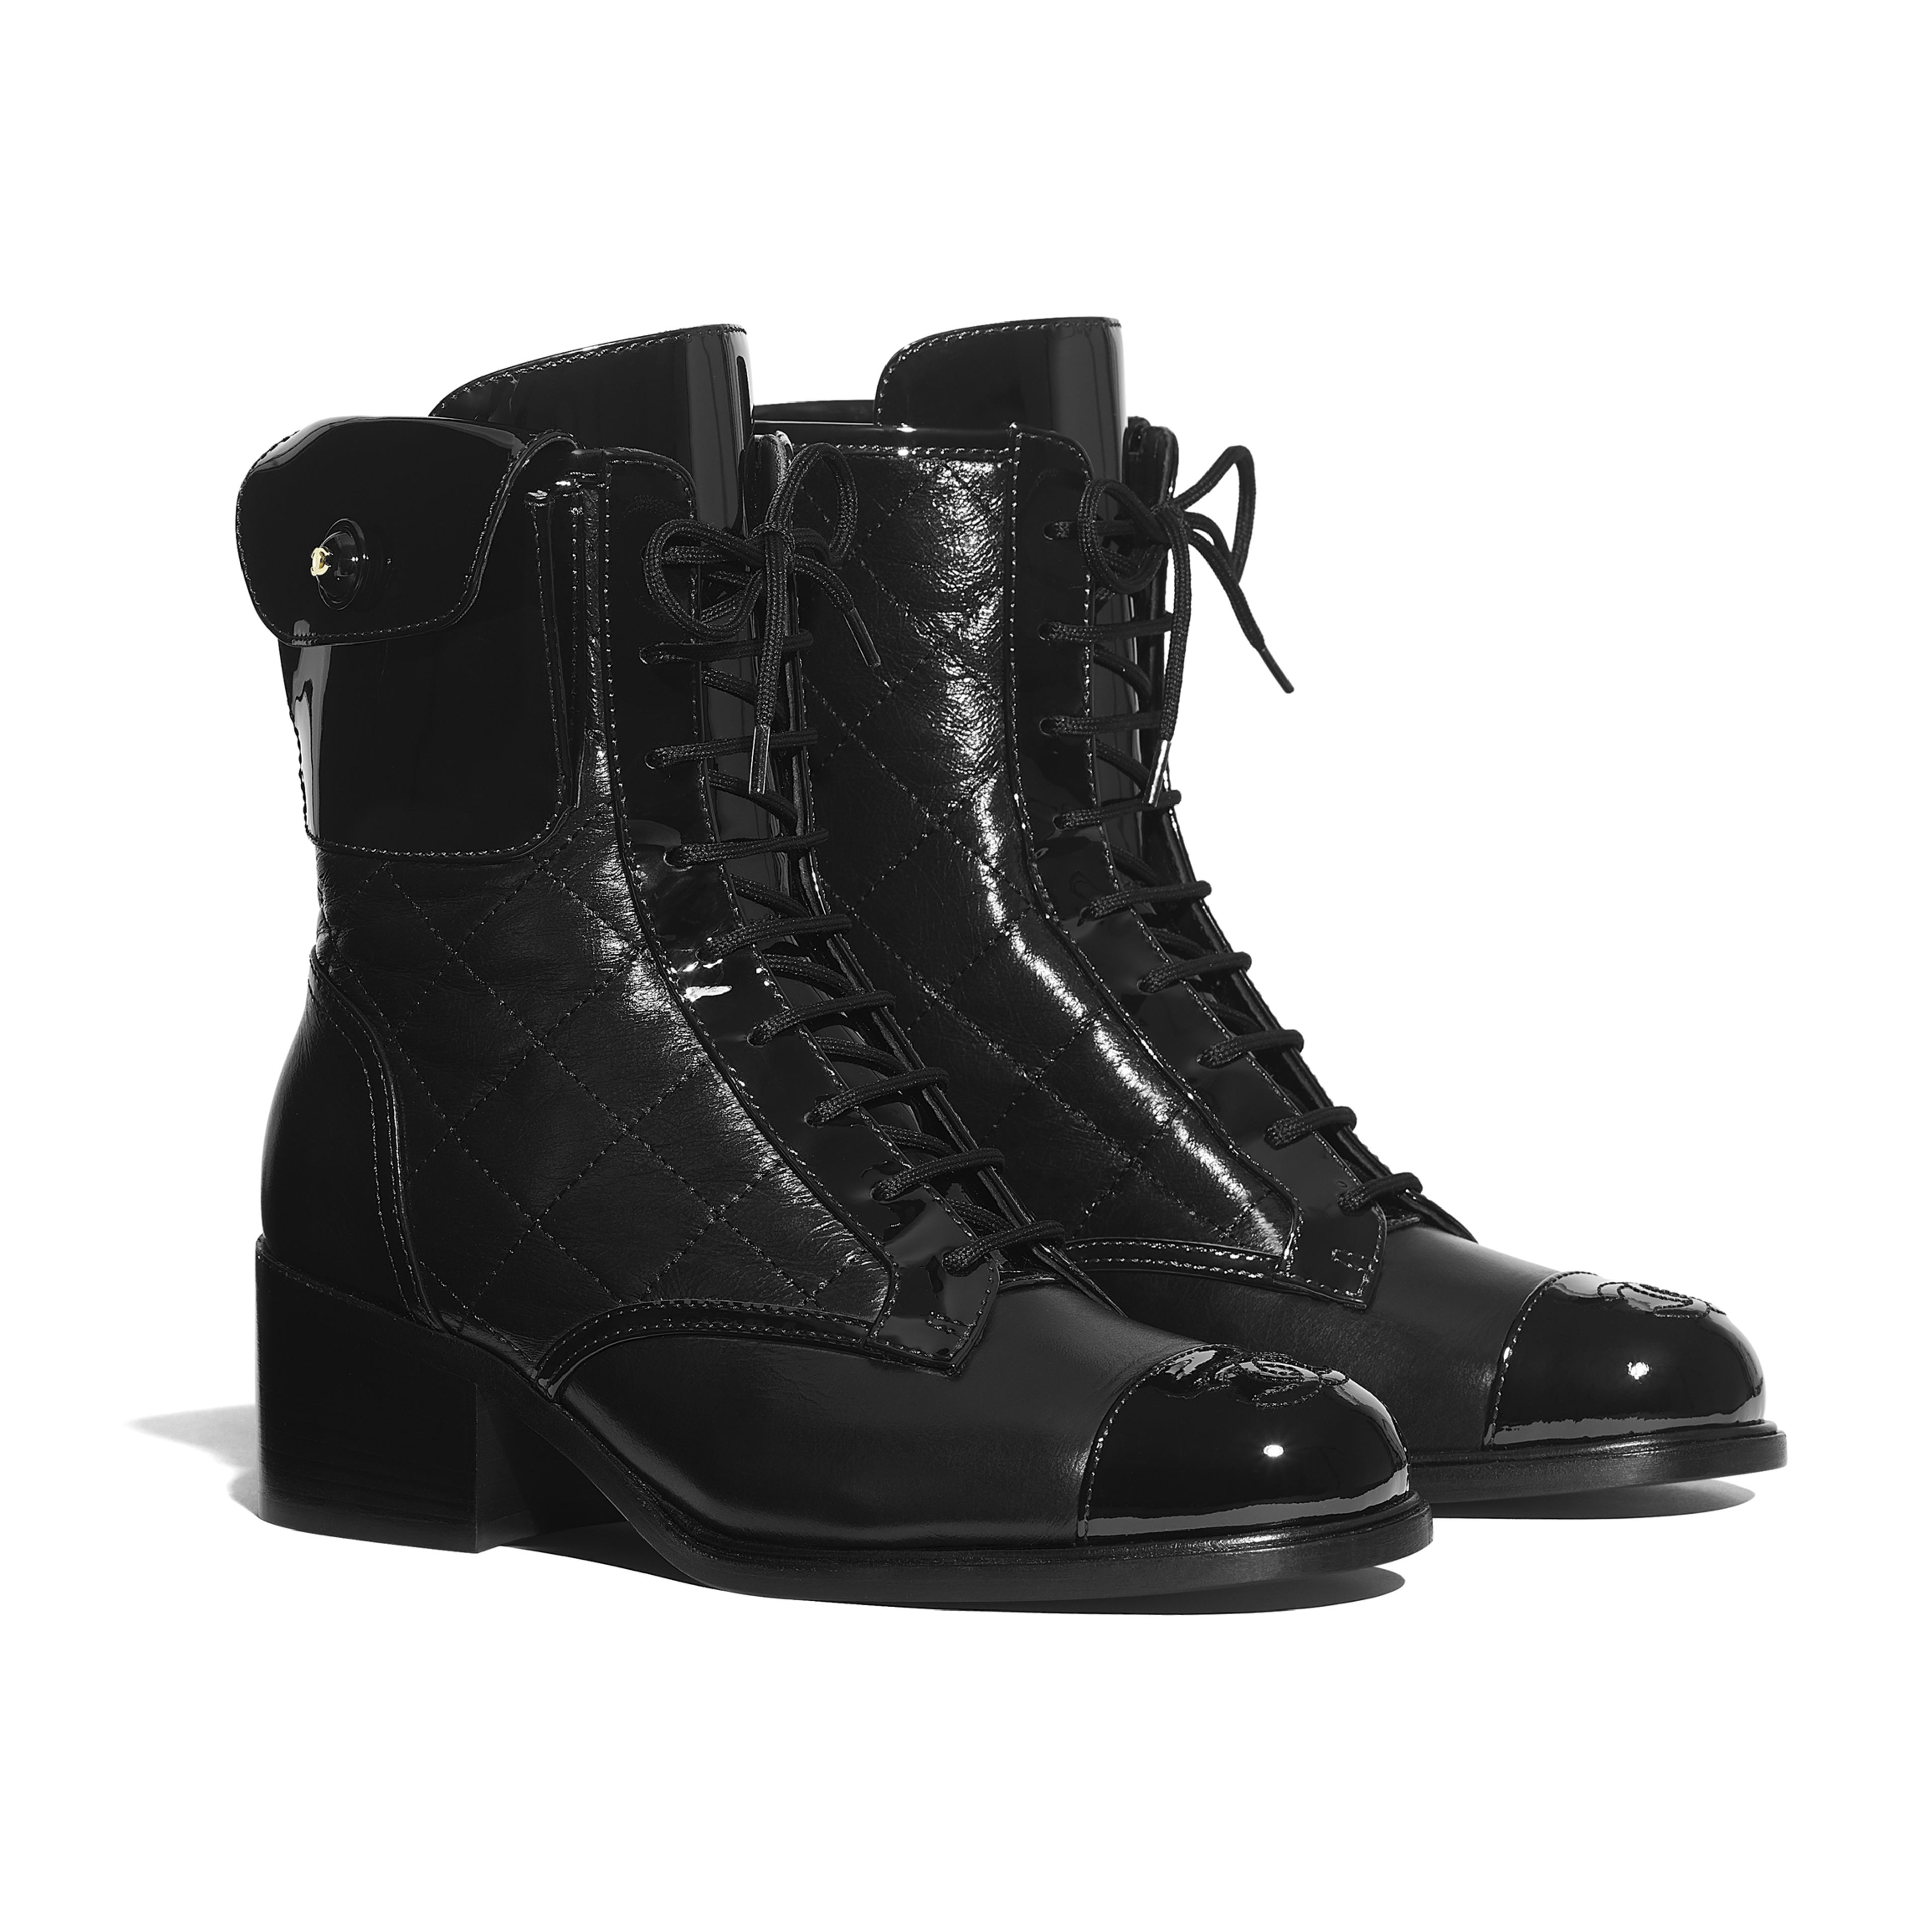 Ankle Boots - Black - Patent Calfskin & Crumpled Calfskin - Alternative view - see full sized version